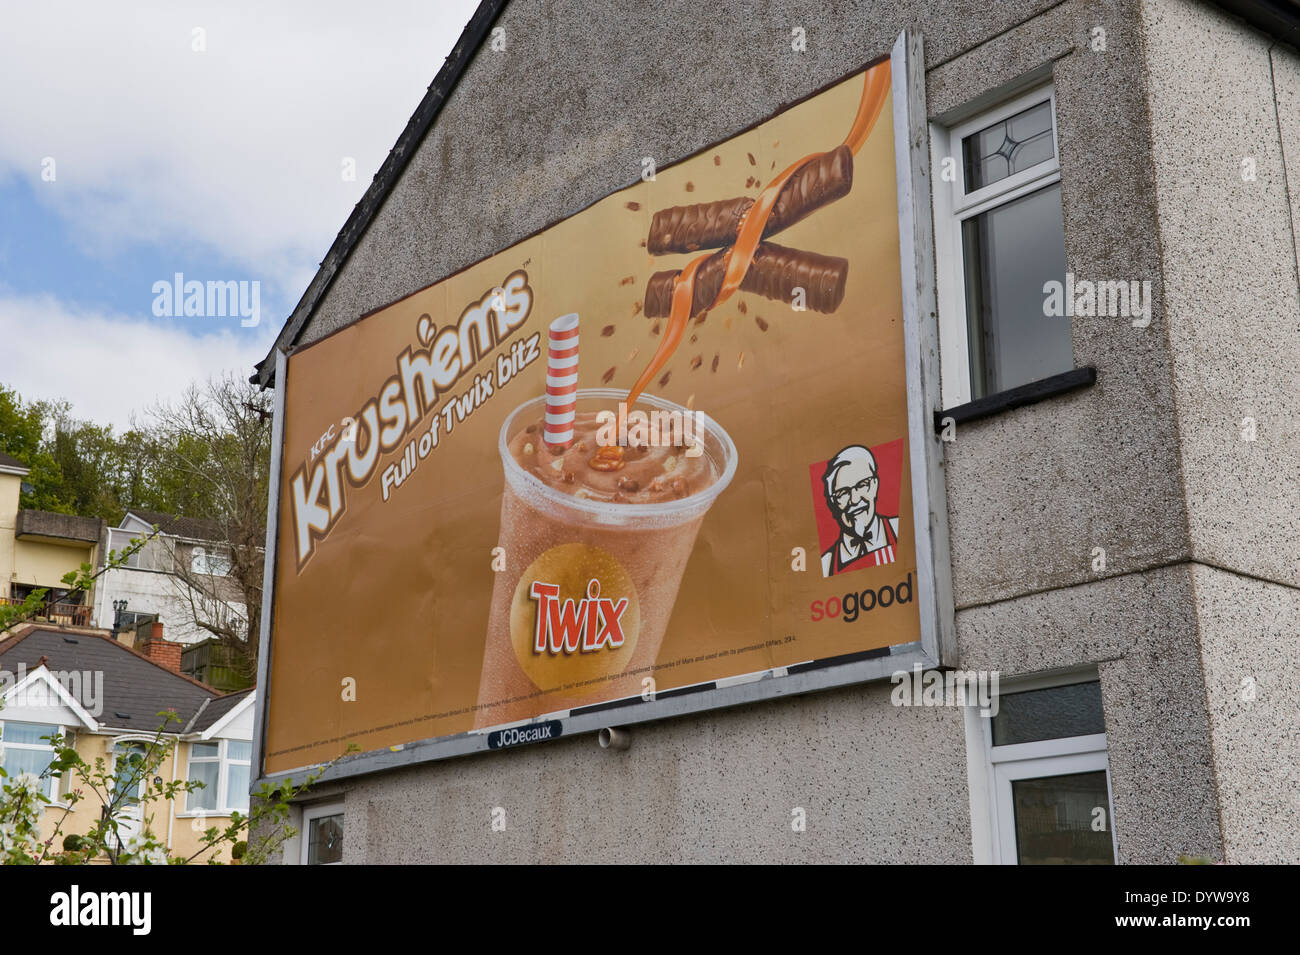 KFC Krushems with Twix advertising billboard on JCDecaux site on side wall of house in Newport South Wales UK - Stock Image